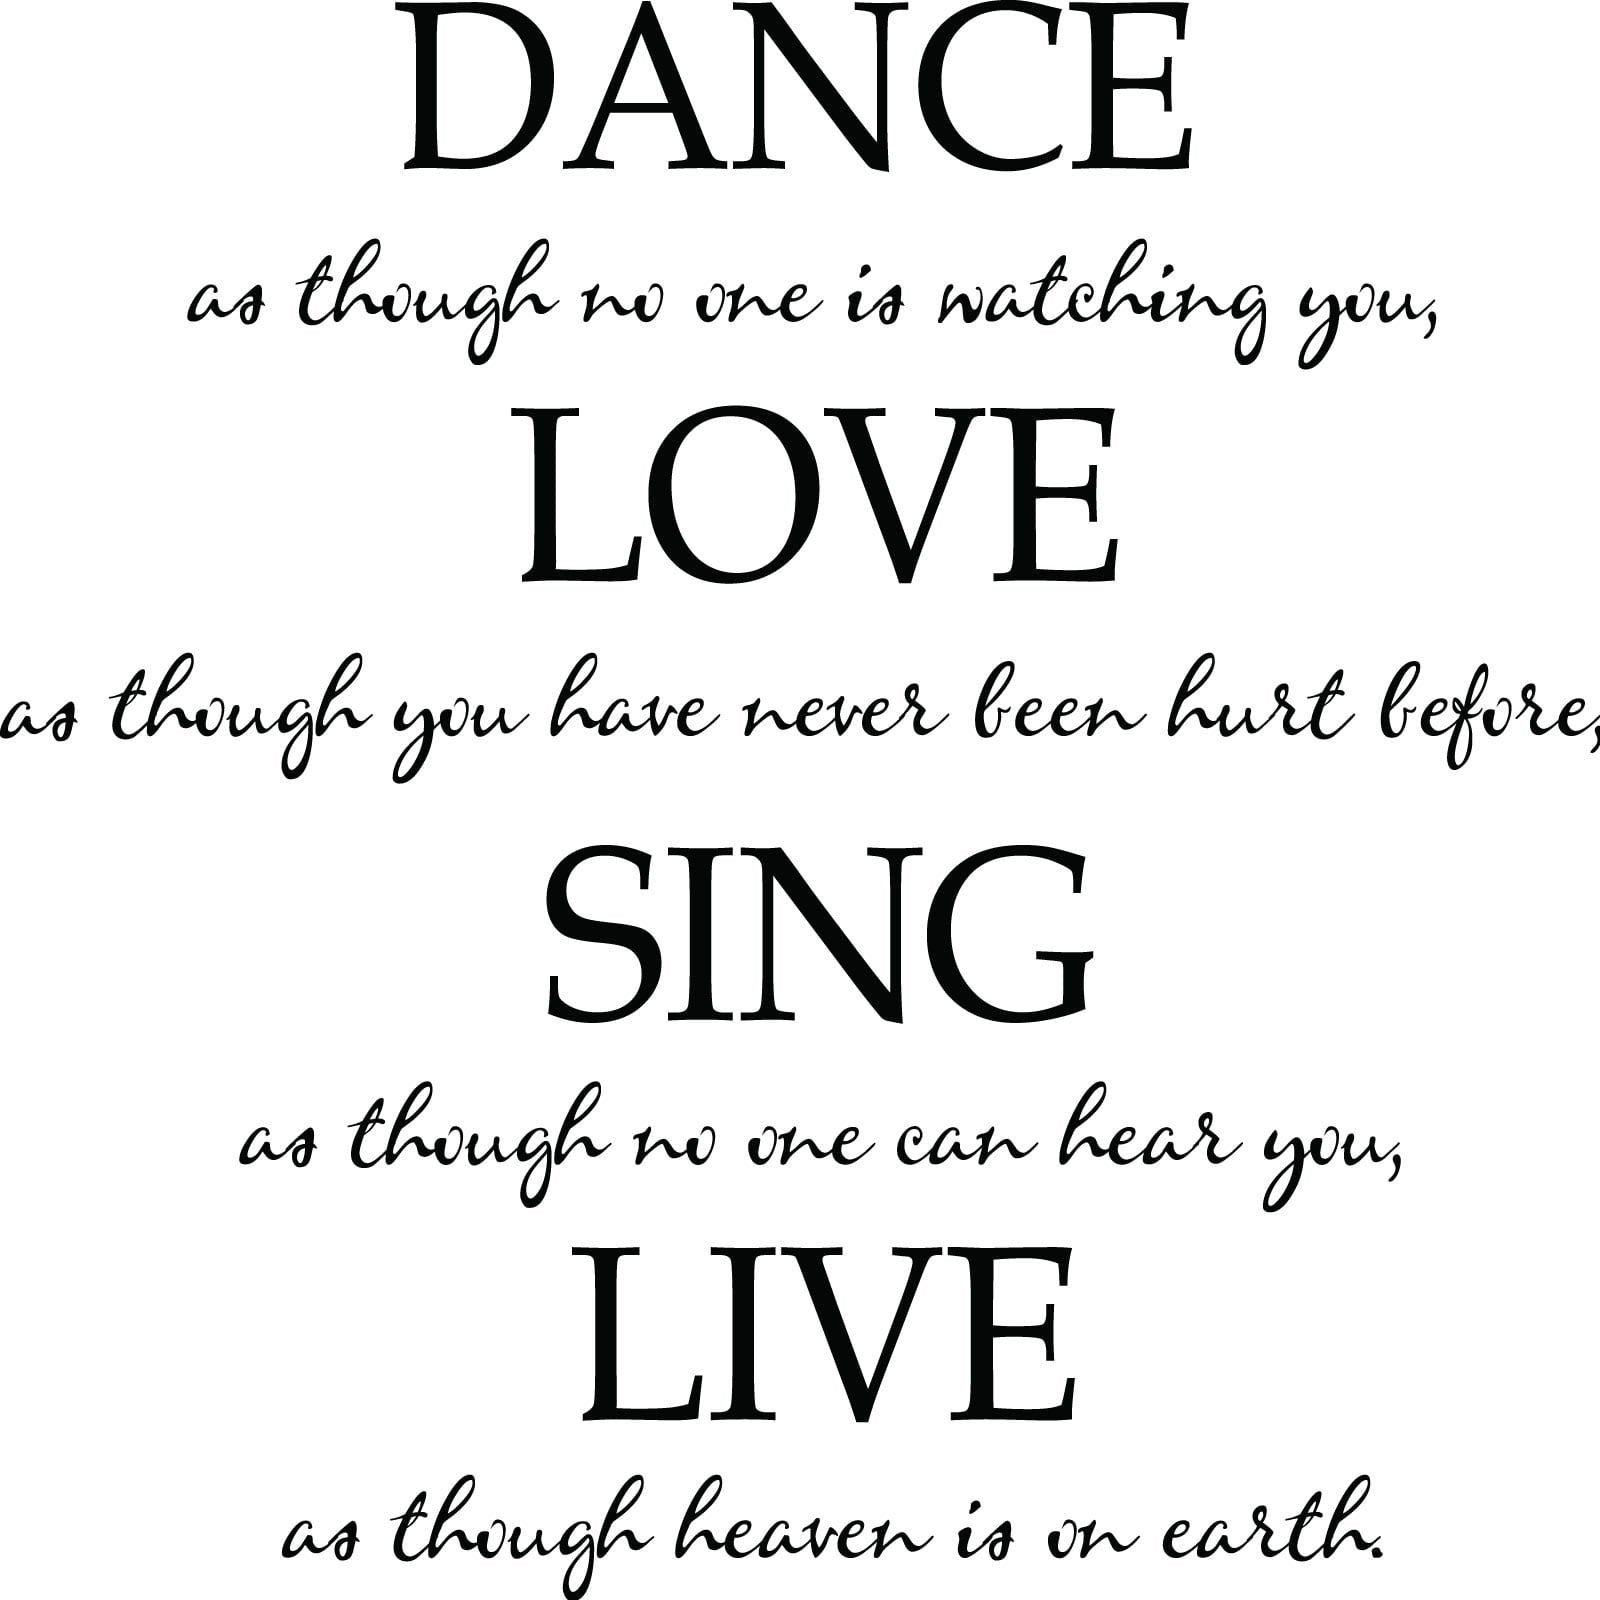 Quotes Life Dancing: Dance Love Sing Live Quote Wall Sticker / Decal